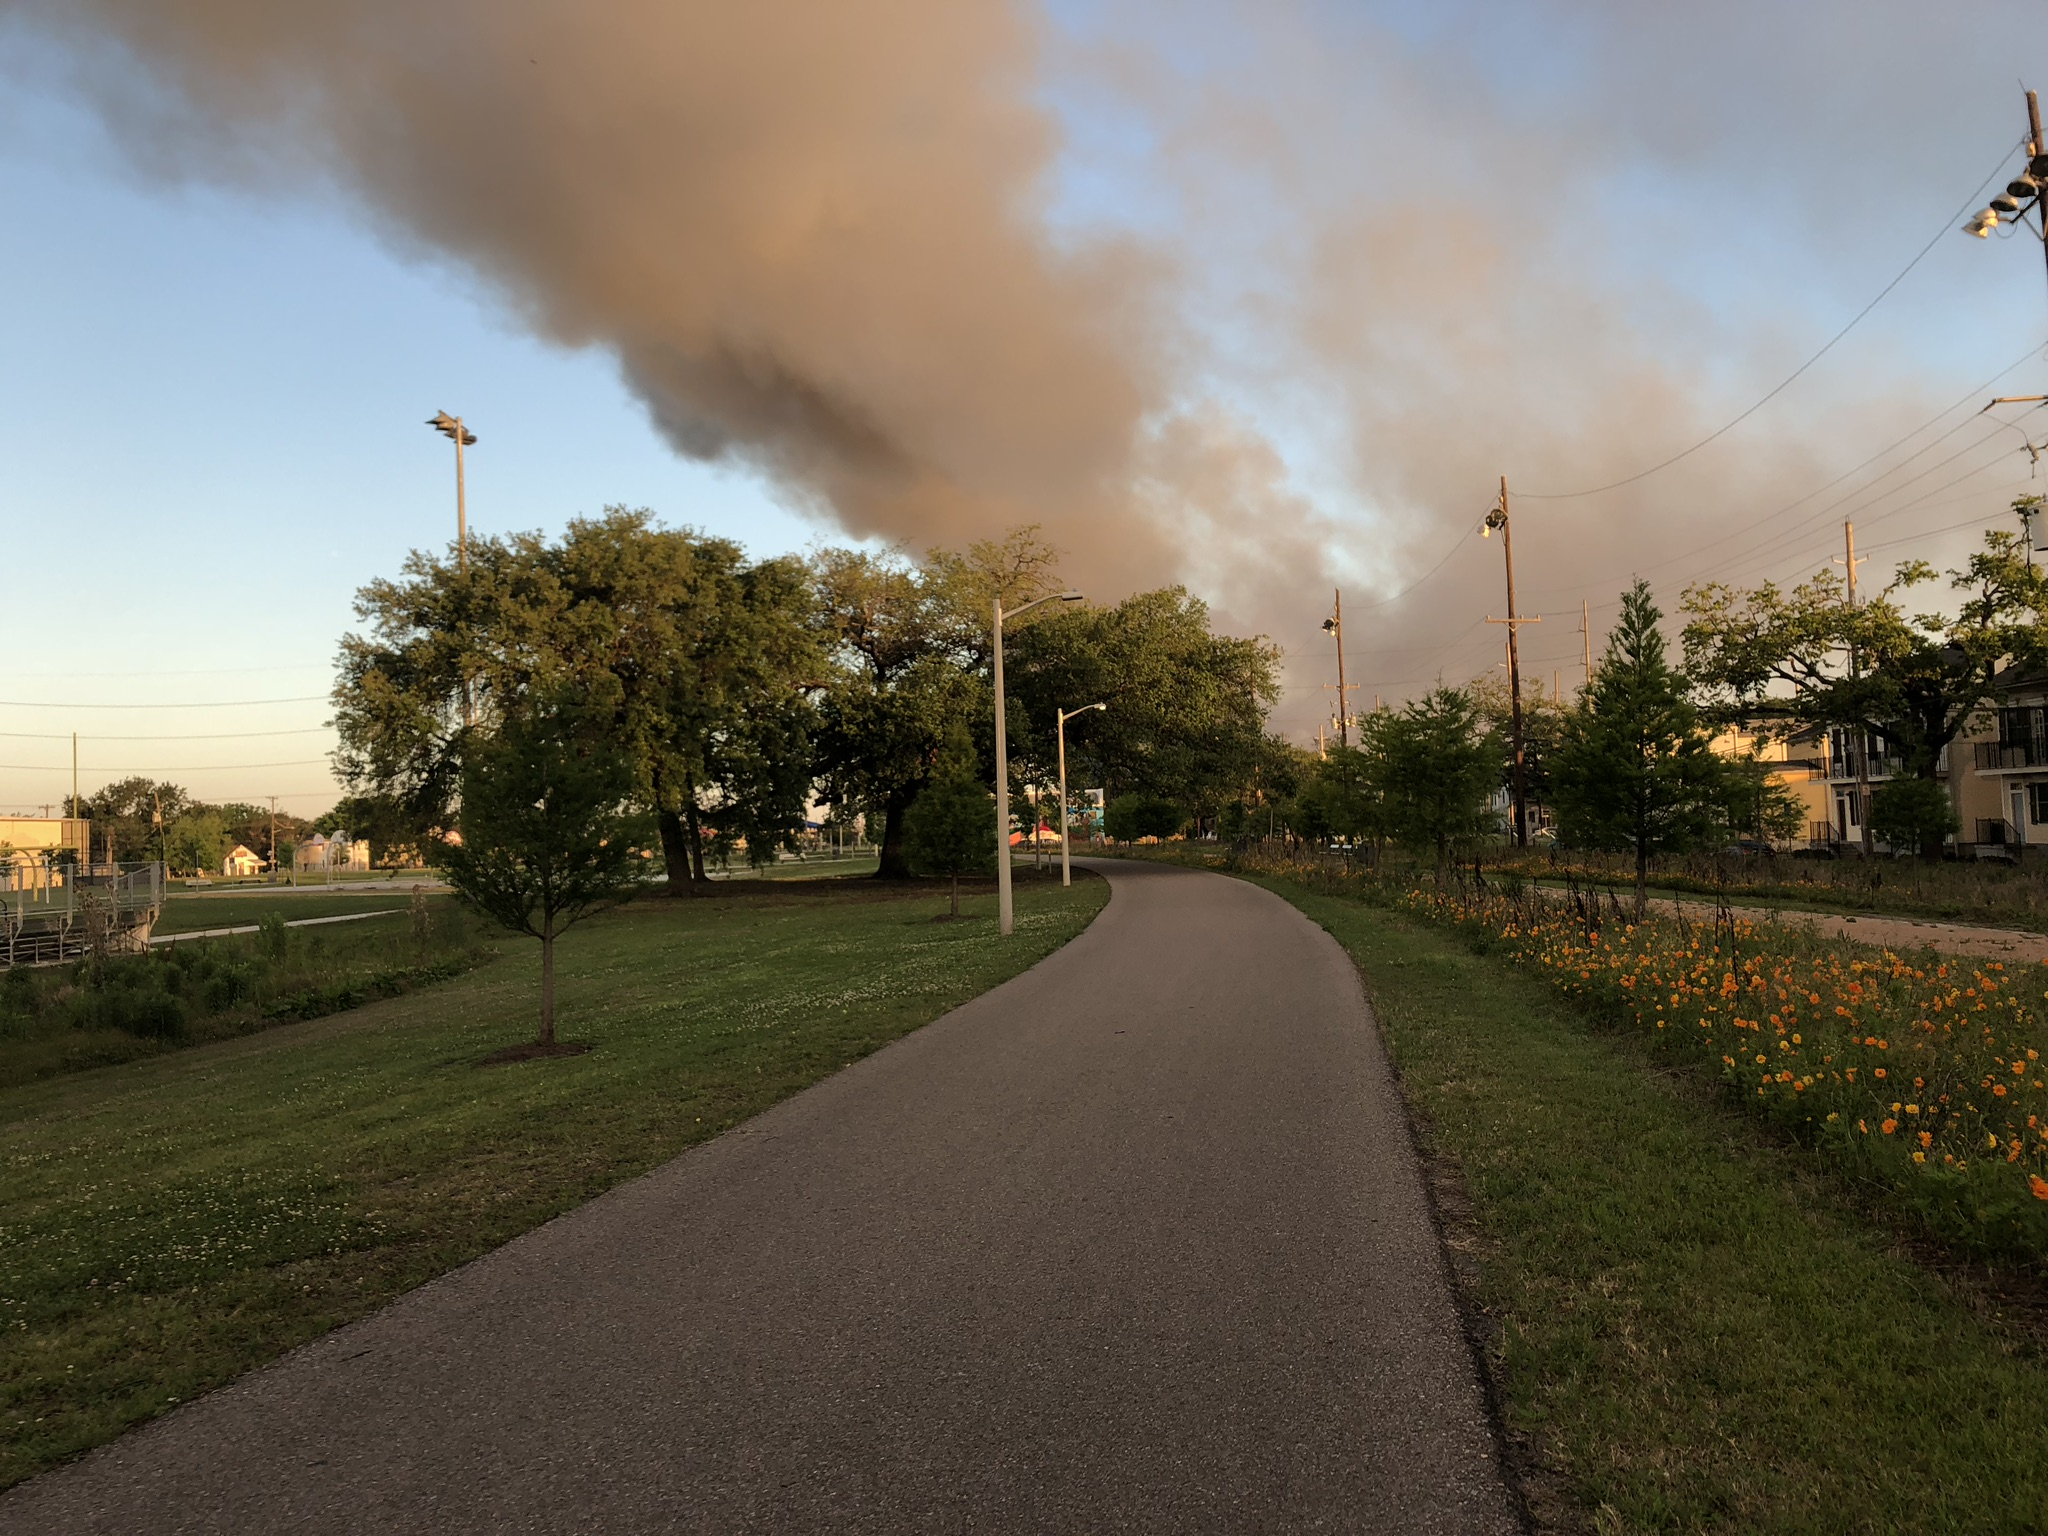 Morning run on Lafayette Greenway. The smoke was coming from a second hand furniture building that burned that morning